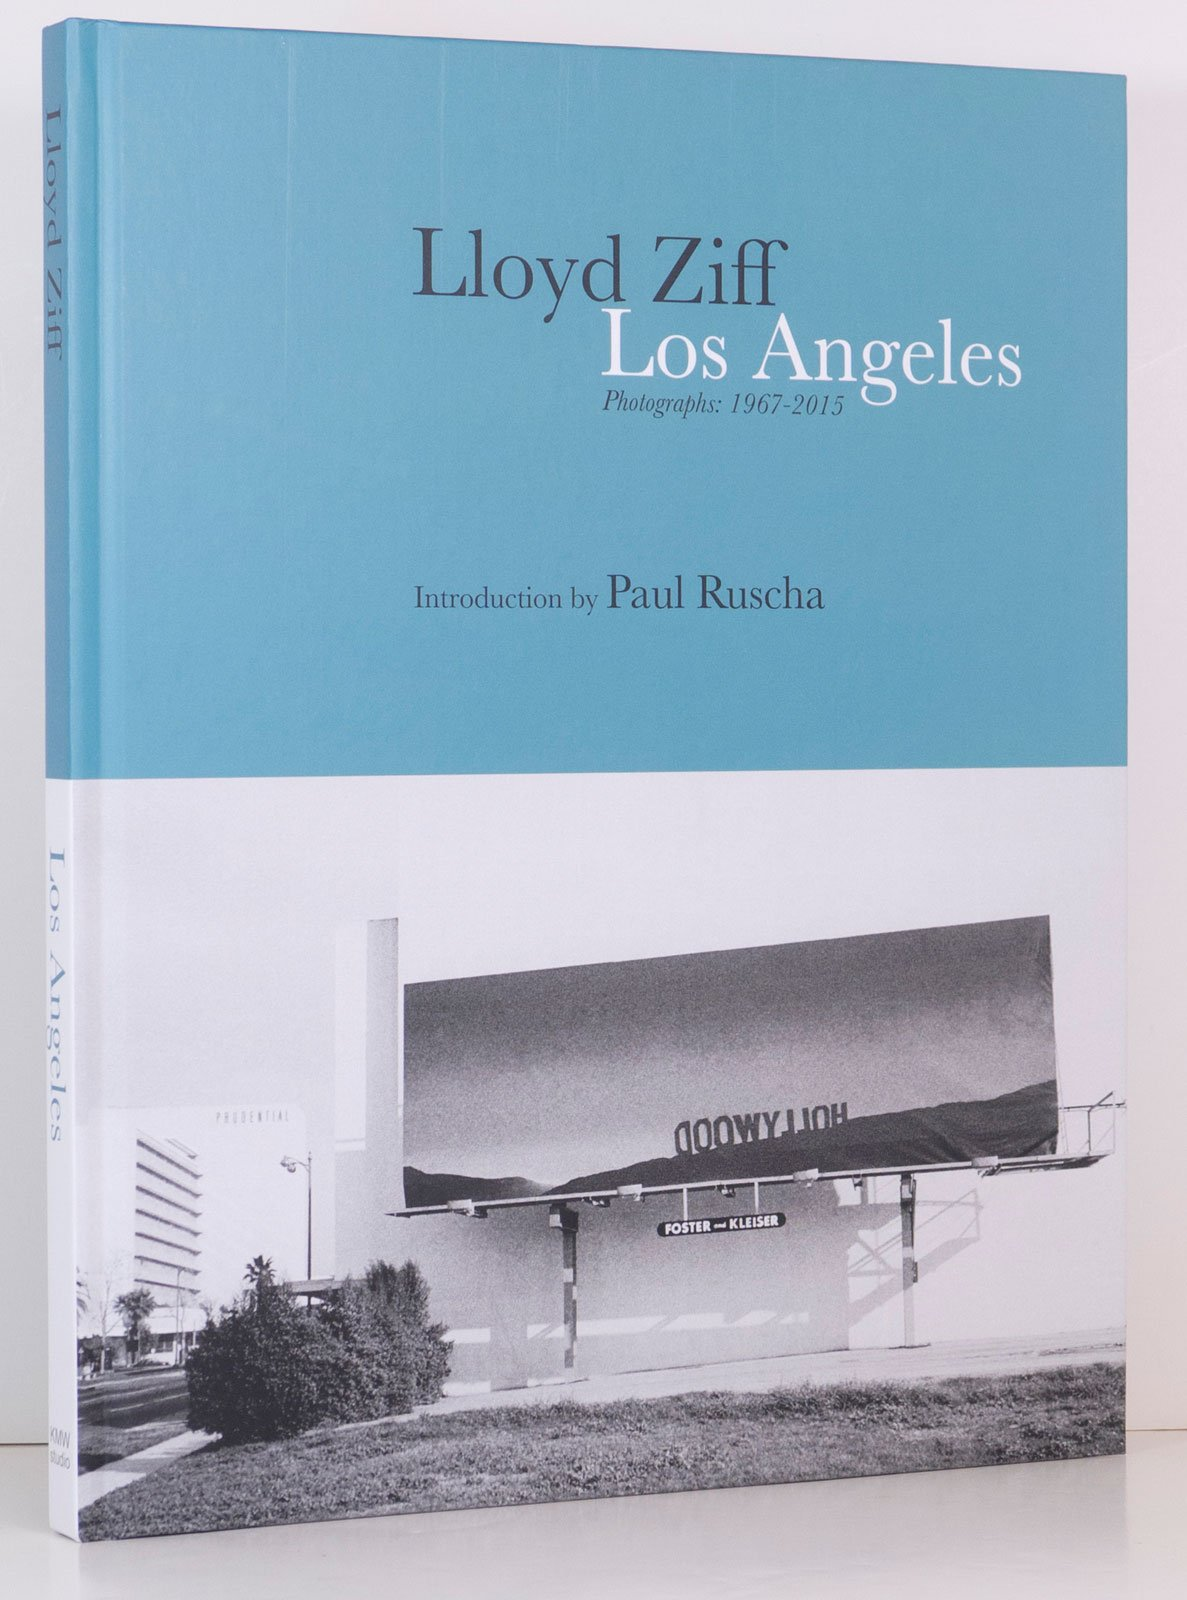 Los Angeles Photographs: 1967-2015 - Lloyd Ziff